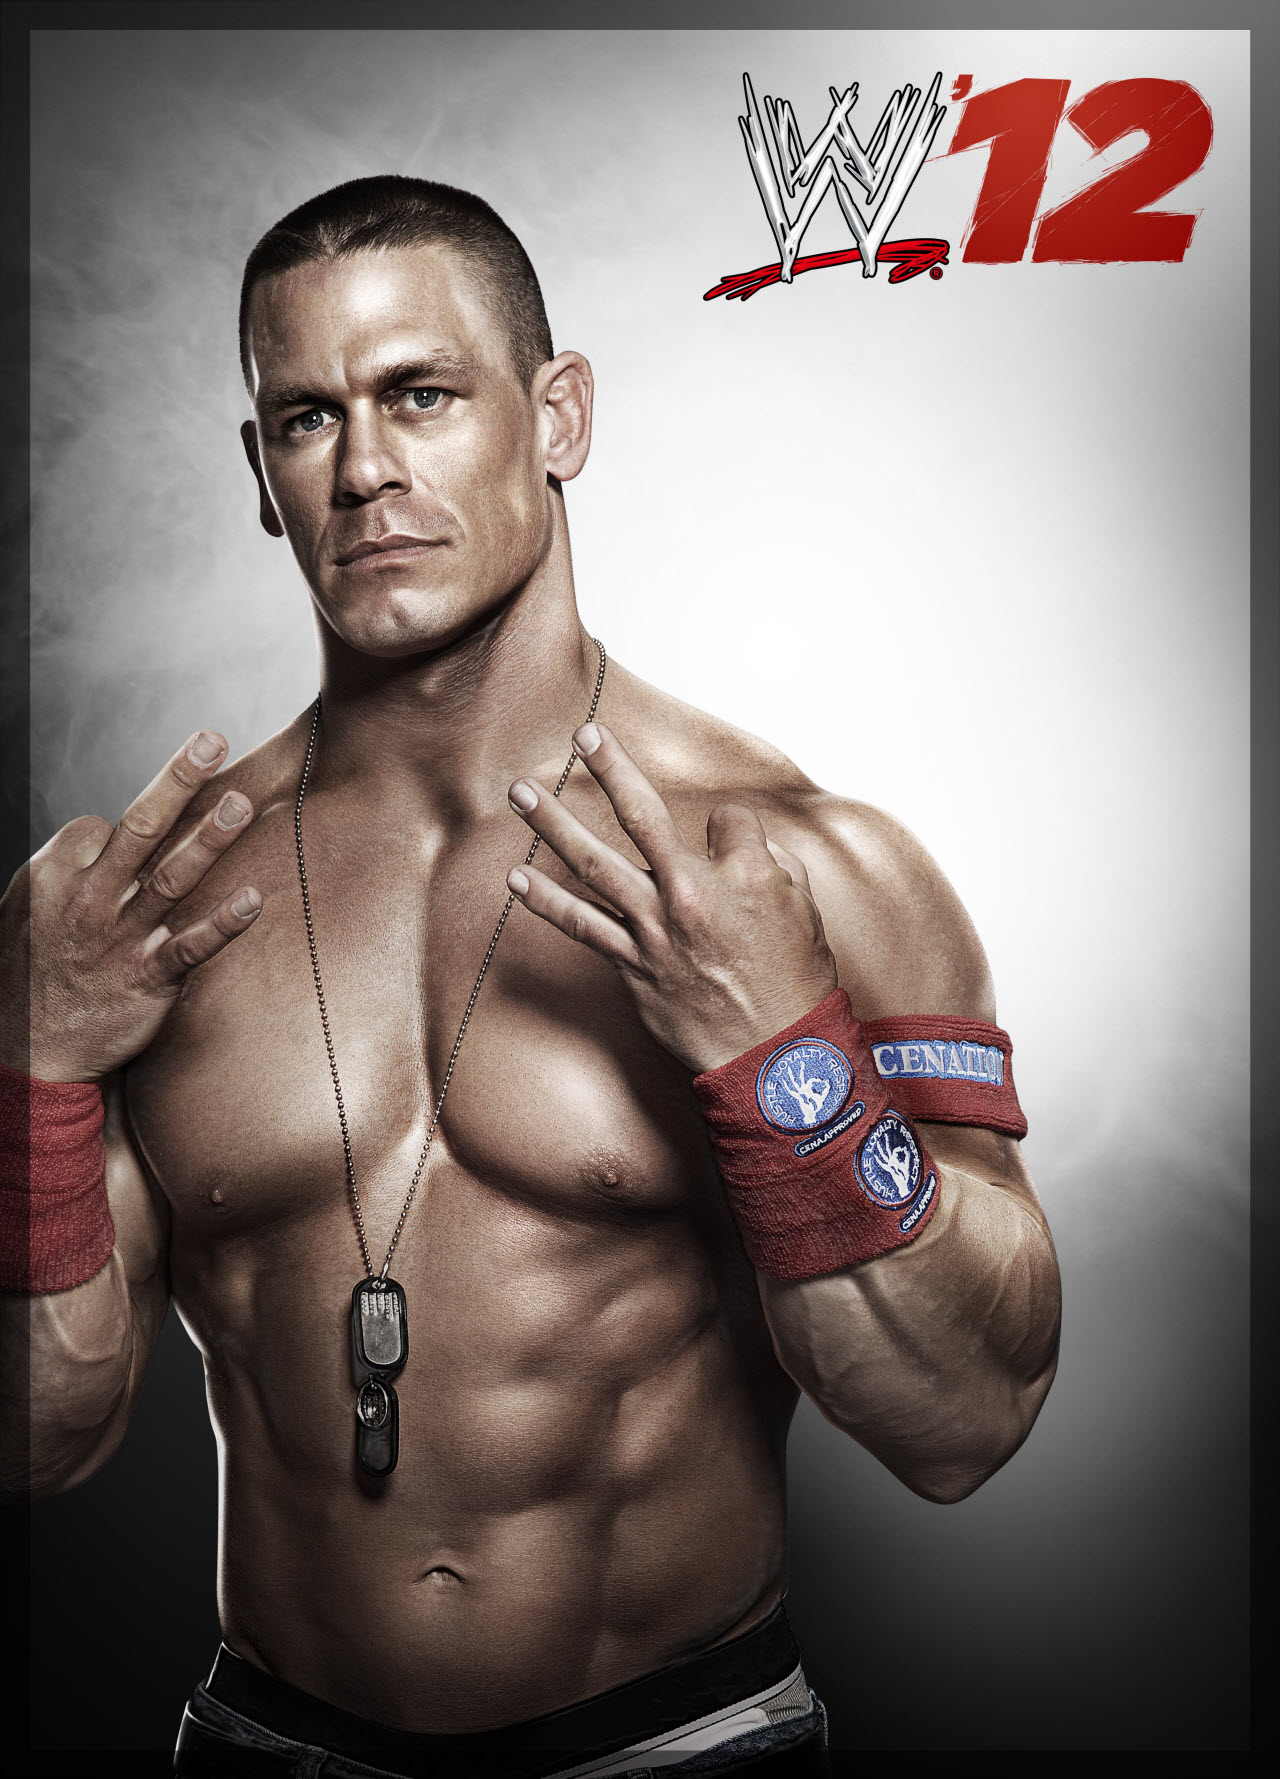 Hq John Cena John Cena Photo 29296044 Fanpop